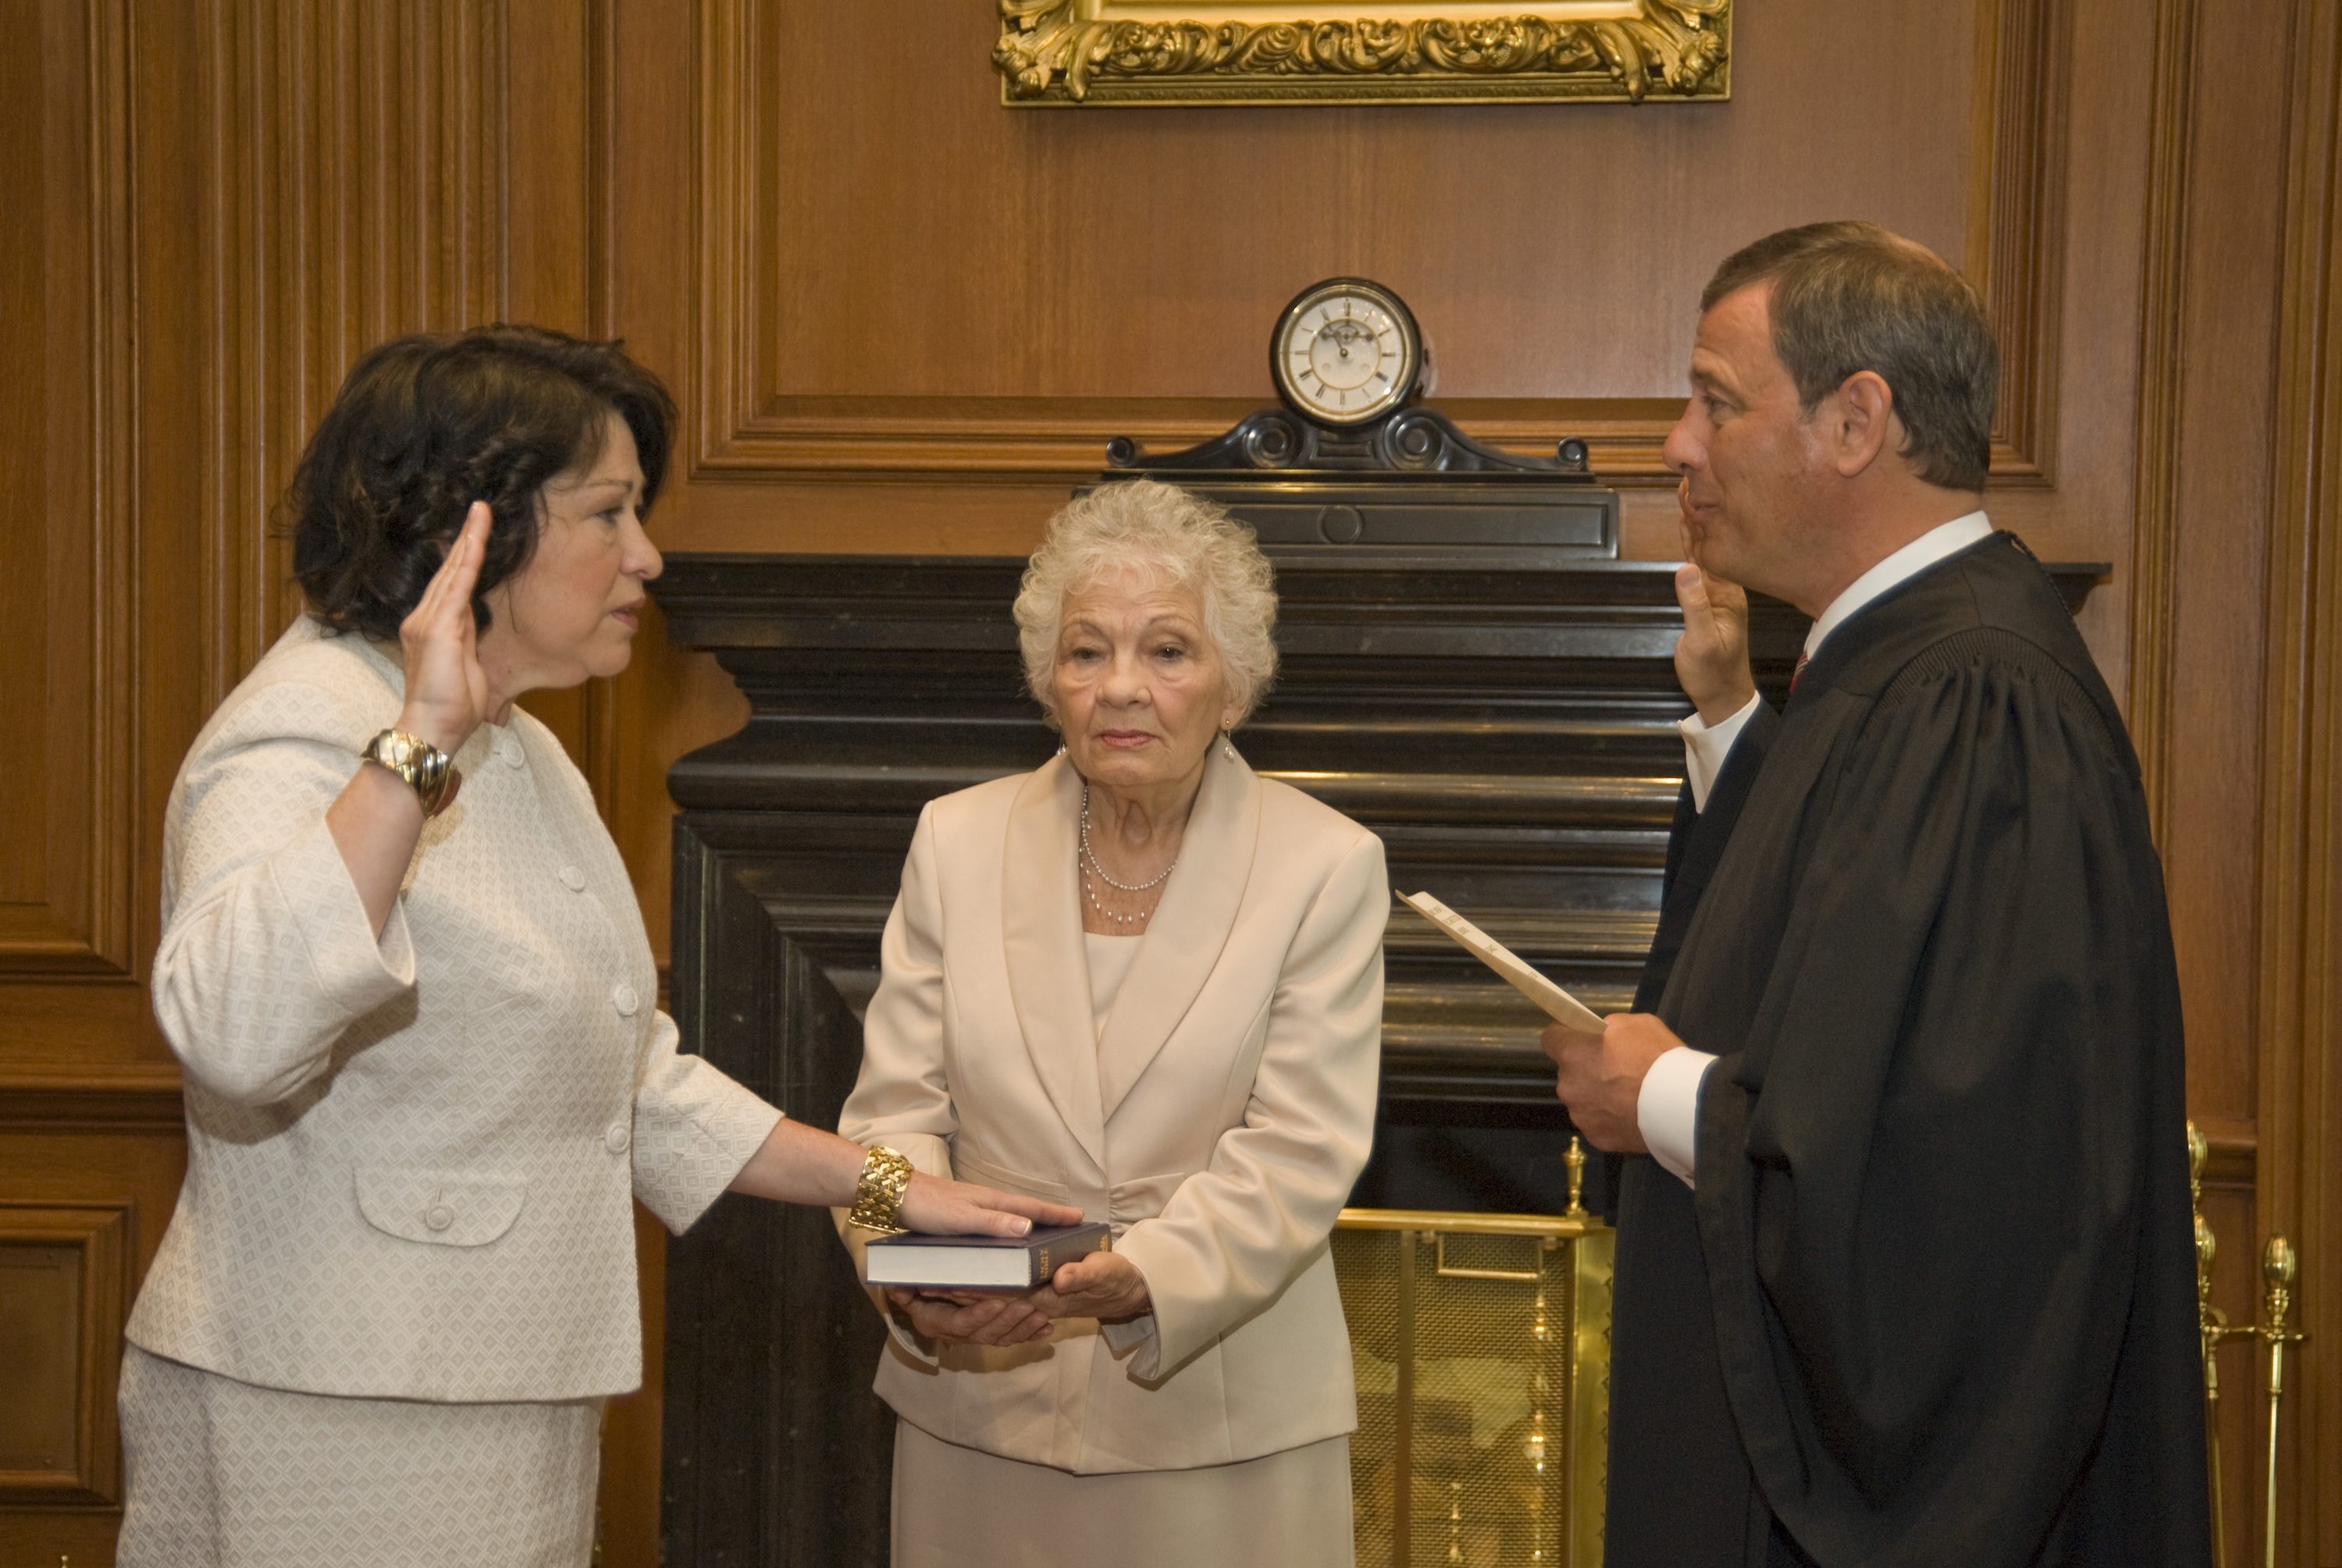 Image result for supreme court east conference room sotomayor swearing in